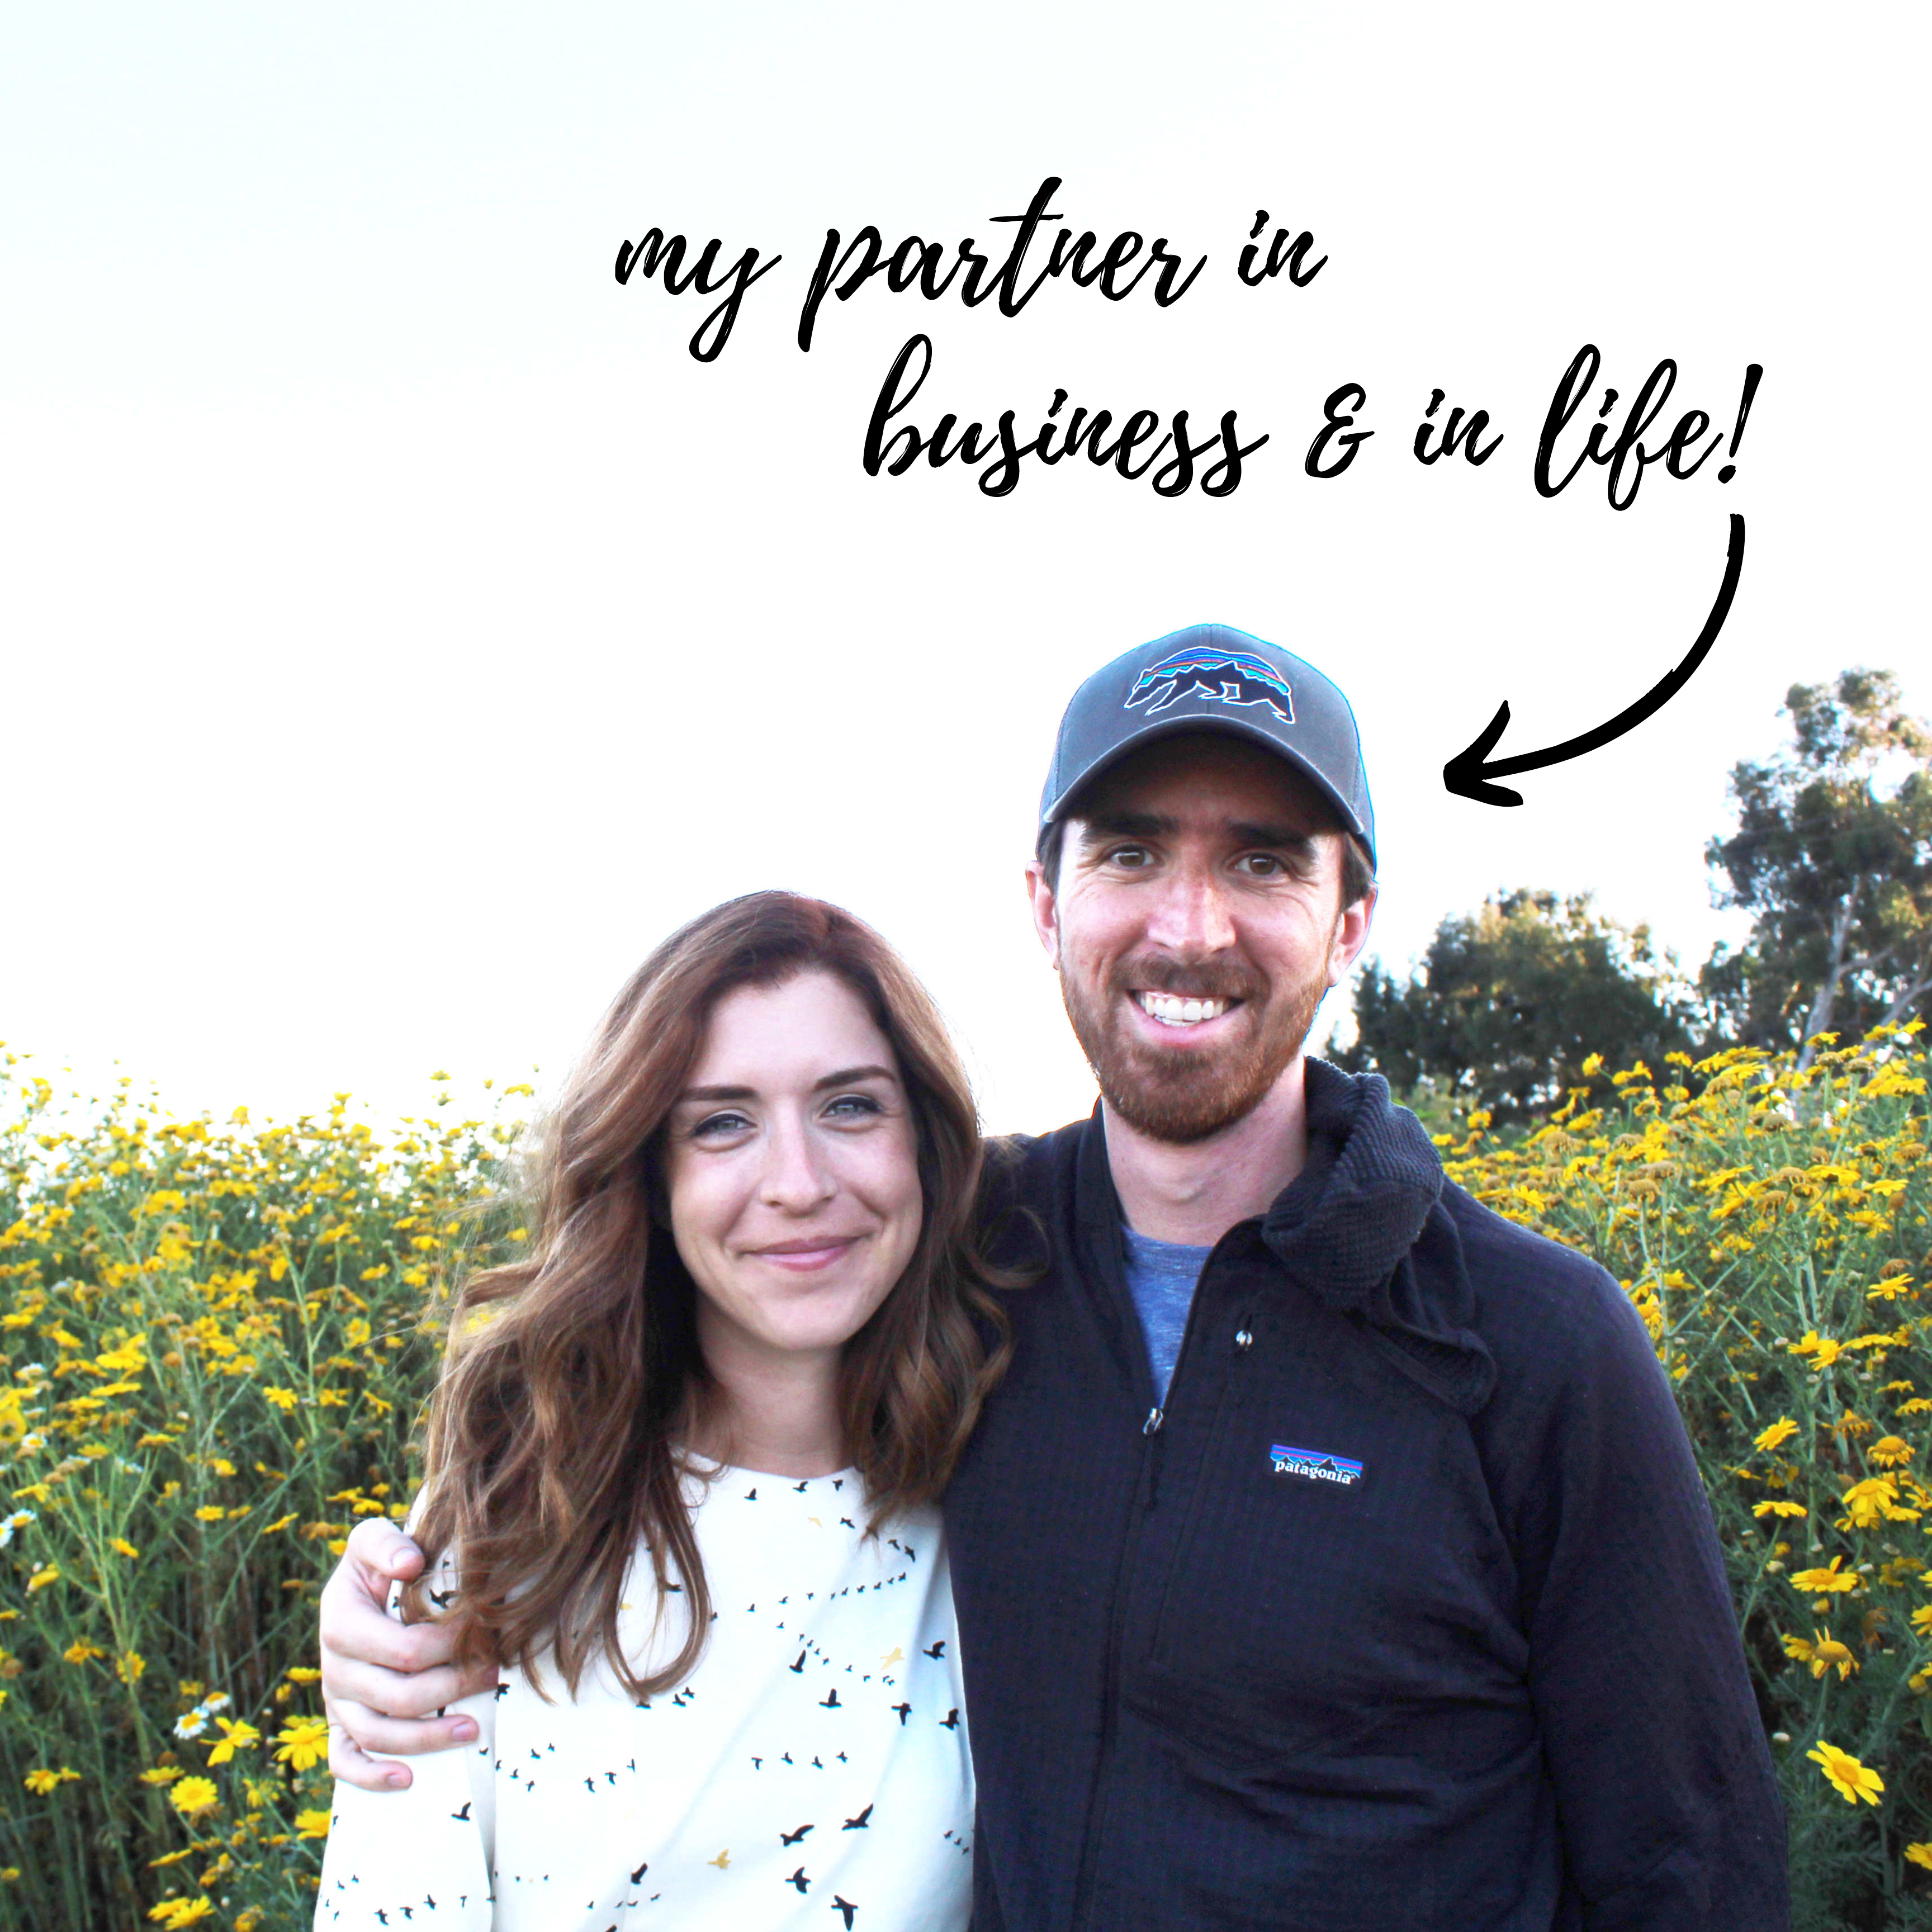 Welcome to The Flora Modiste: Introducing my partner in business & in life